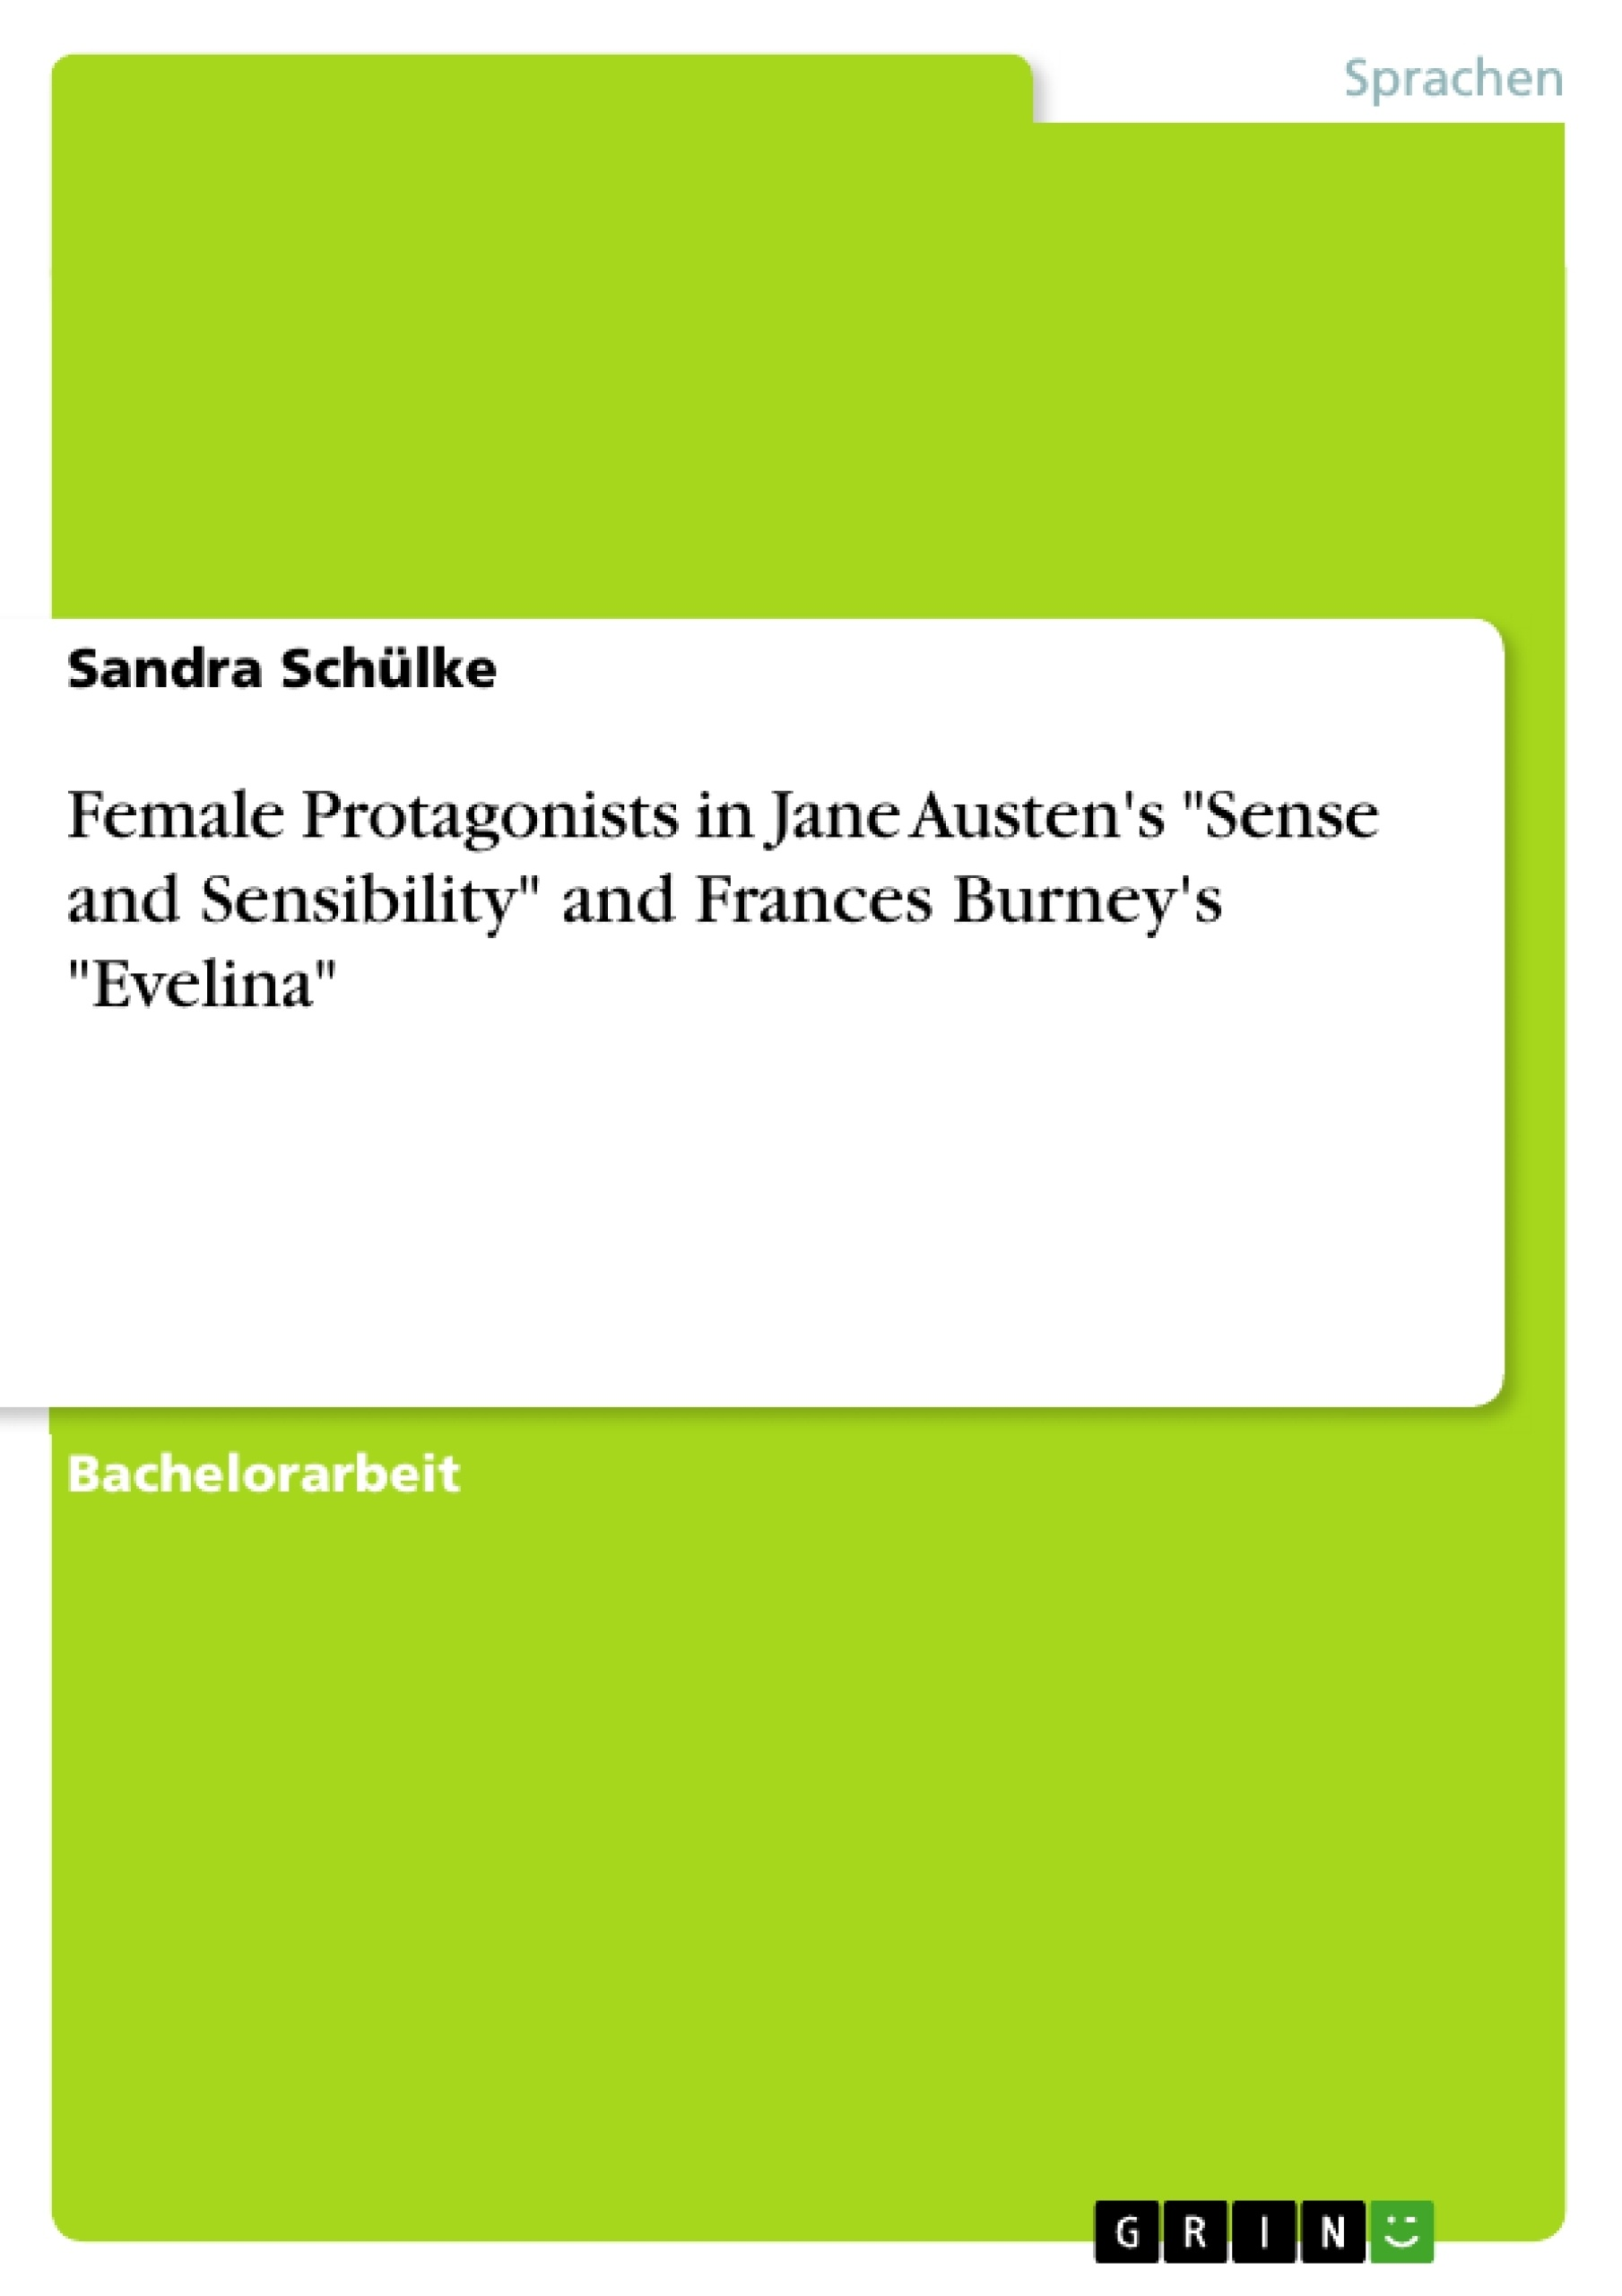 female protagonists in jane austen s sense and sensibility and female protagonists in jane austen s sense and sensibility and masterarbeit hausarbeit bachelorarbeit veroumlffentlichen